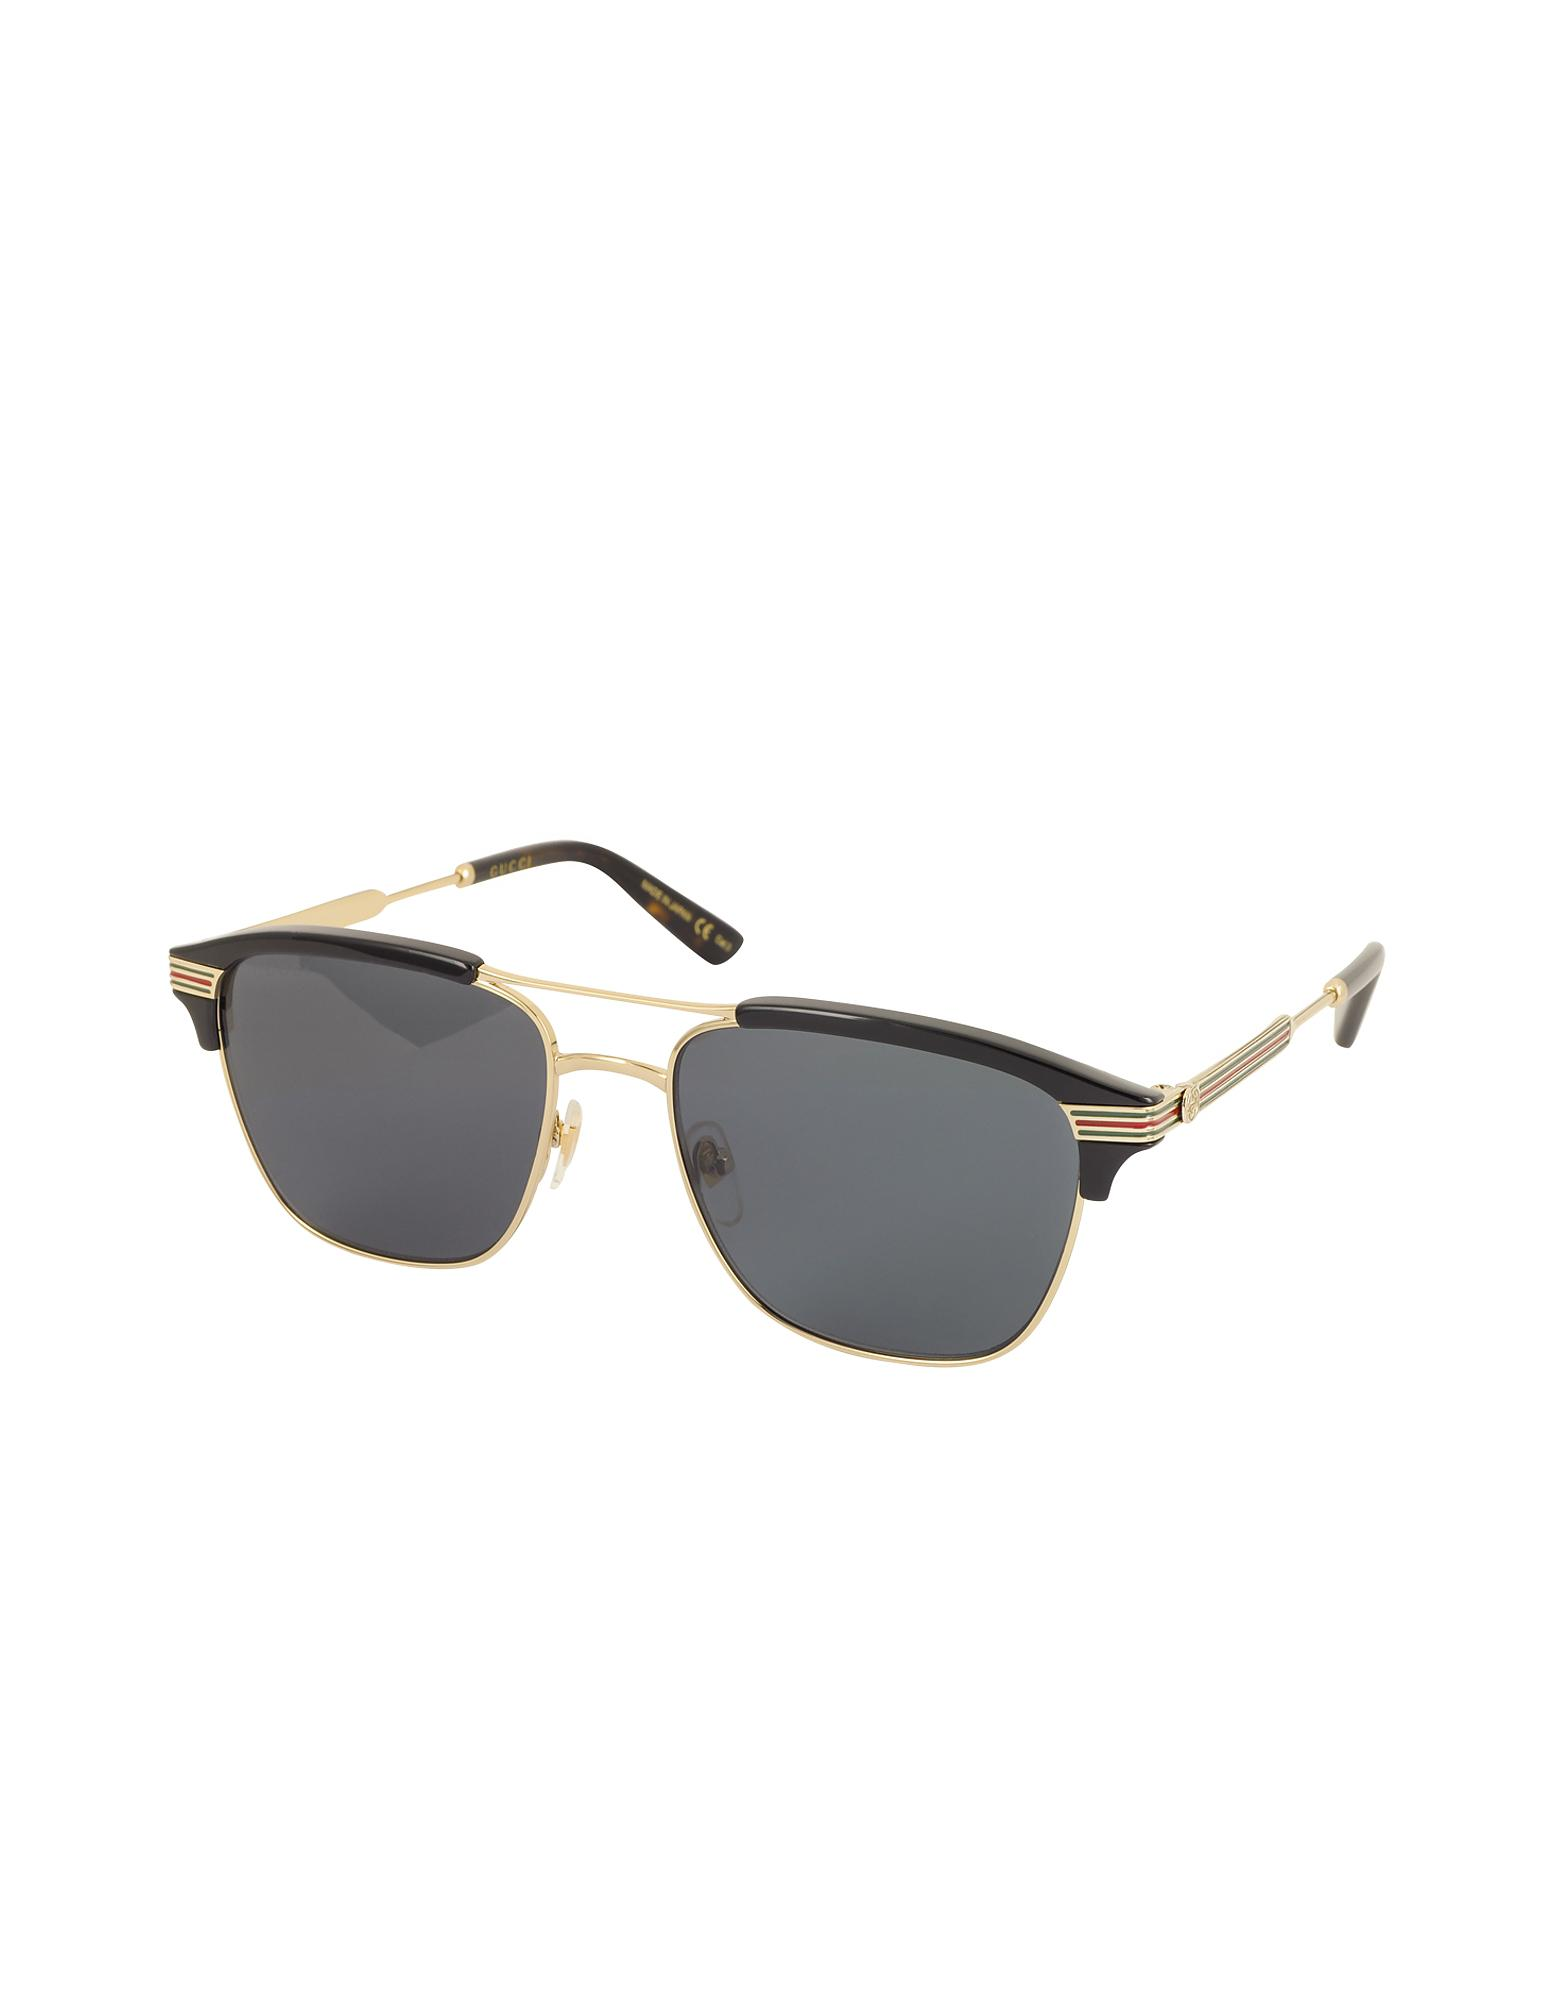 82443f4aa06 Lyst - Gucci GG0241S 002 Square-frame Metal Sunglasses in Black for Men